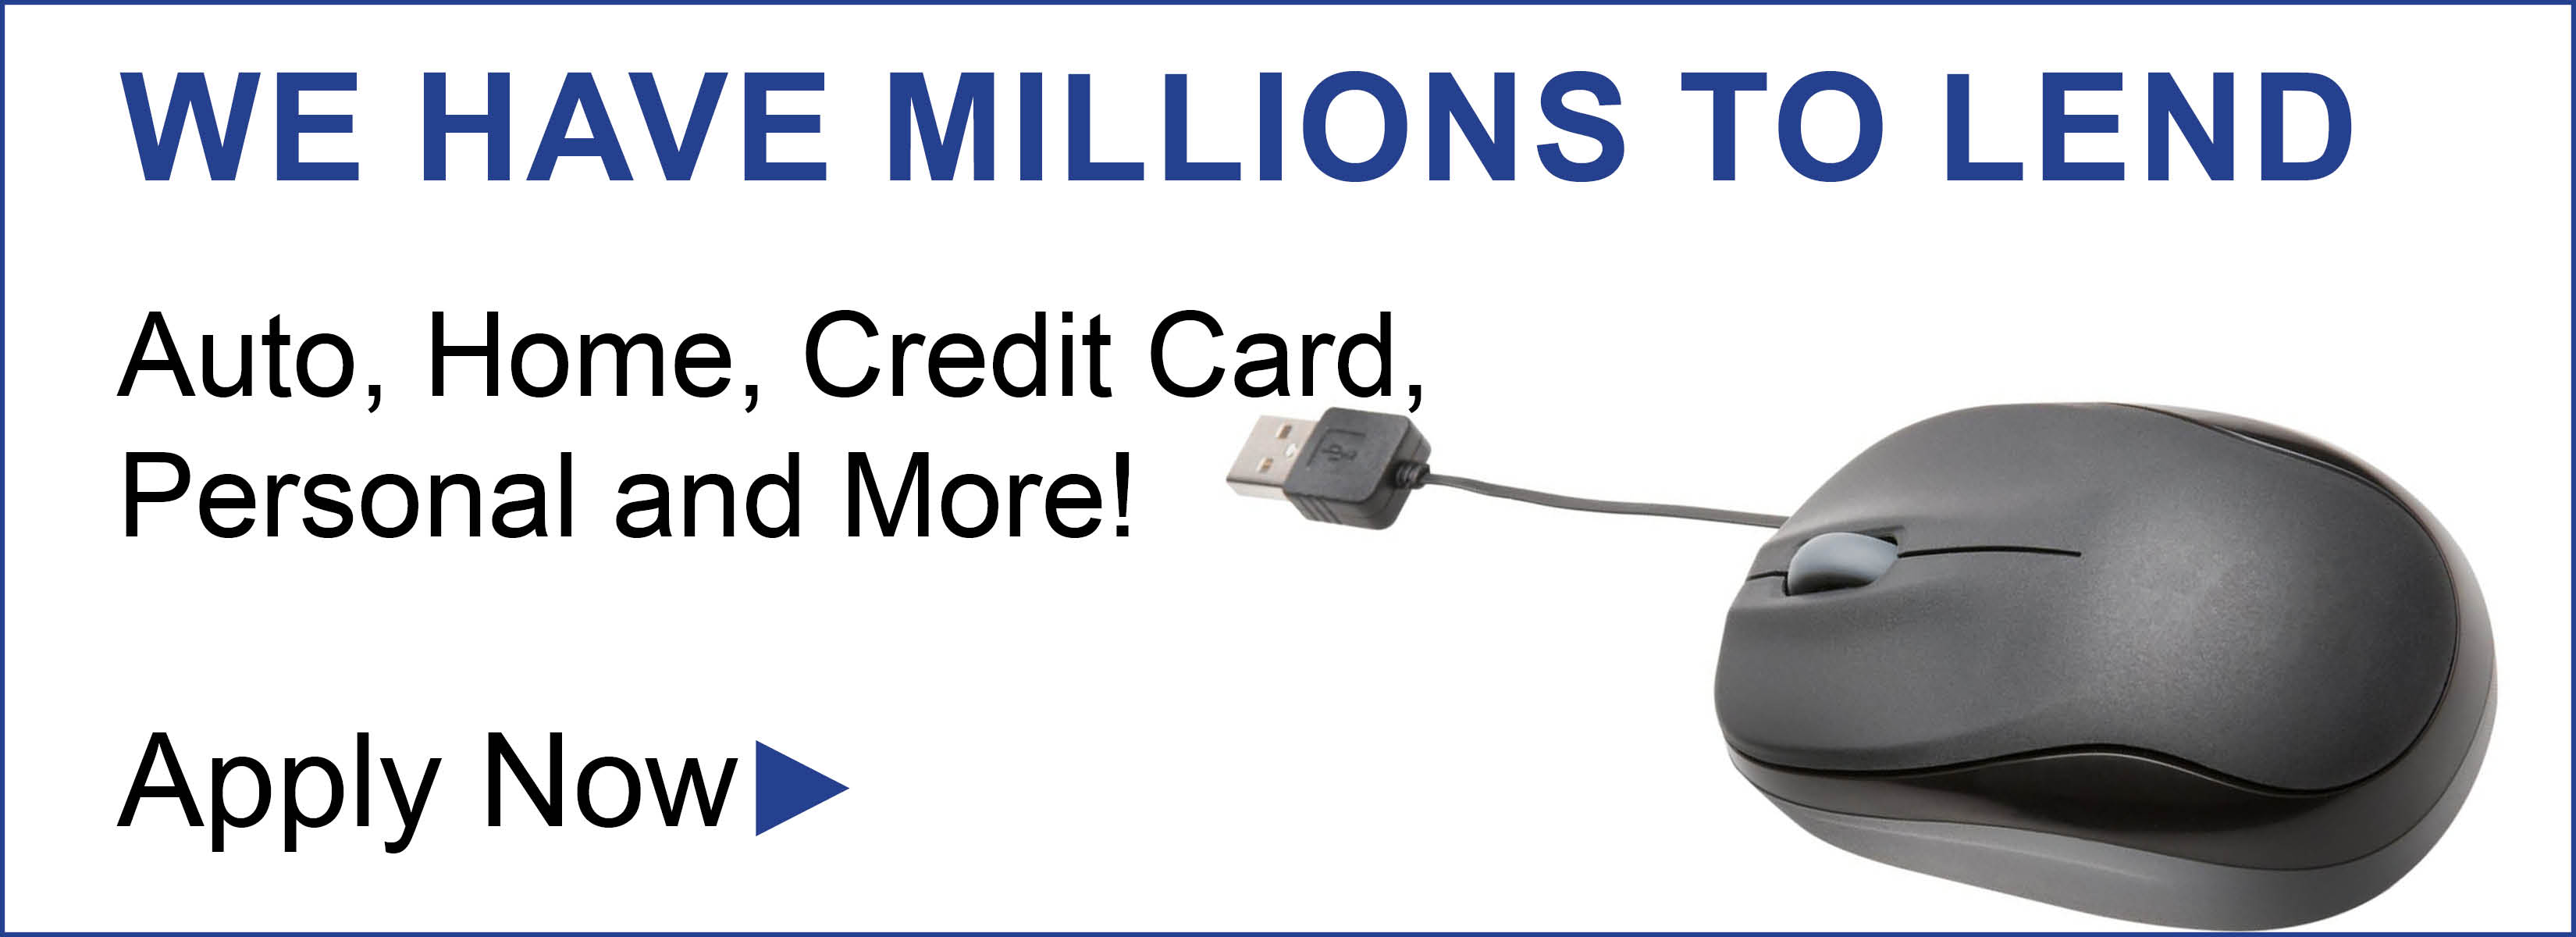 We have millions to lend.  Auto, Home, Credit Card, Personal and More.  Apply Now